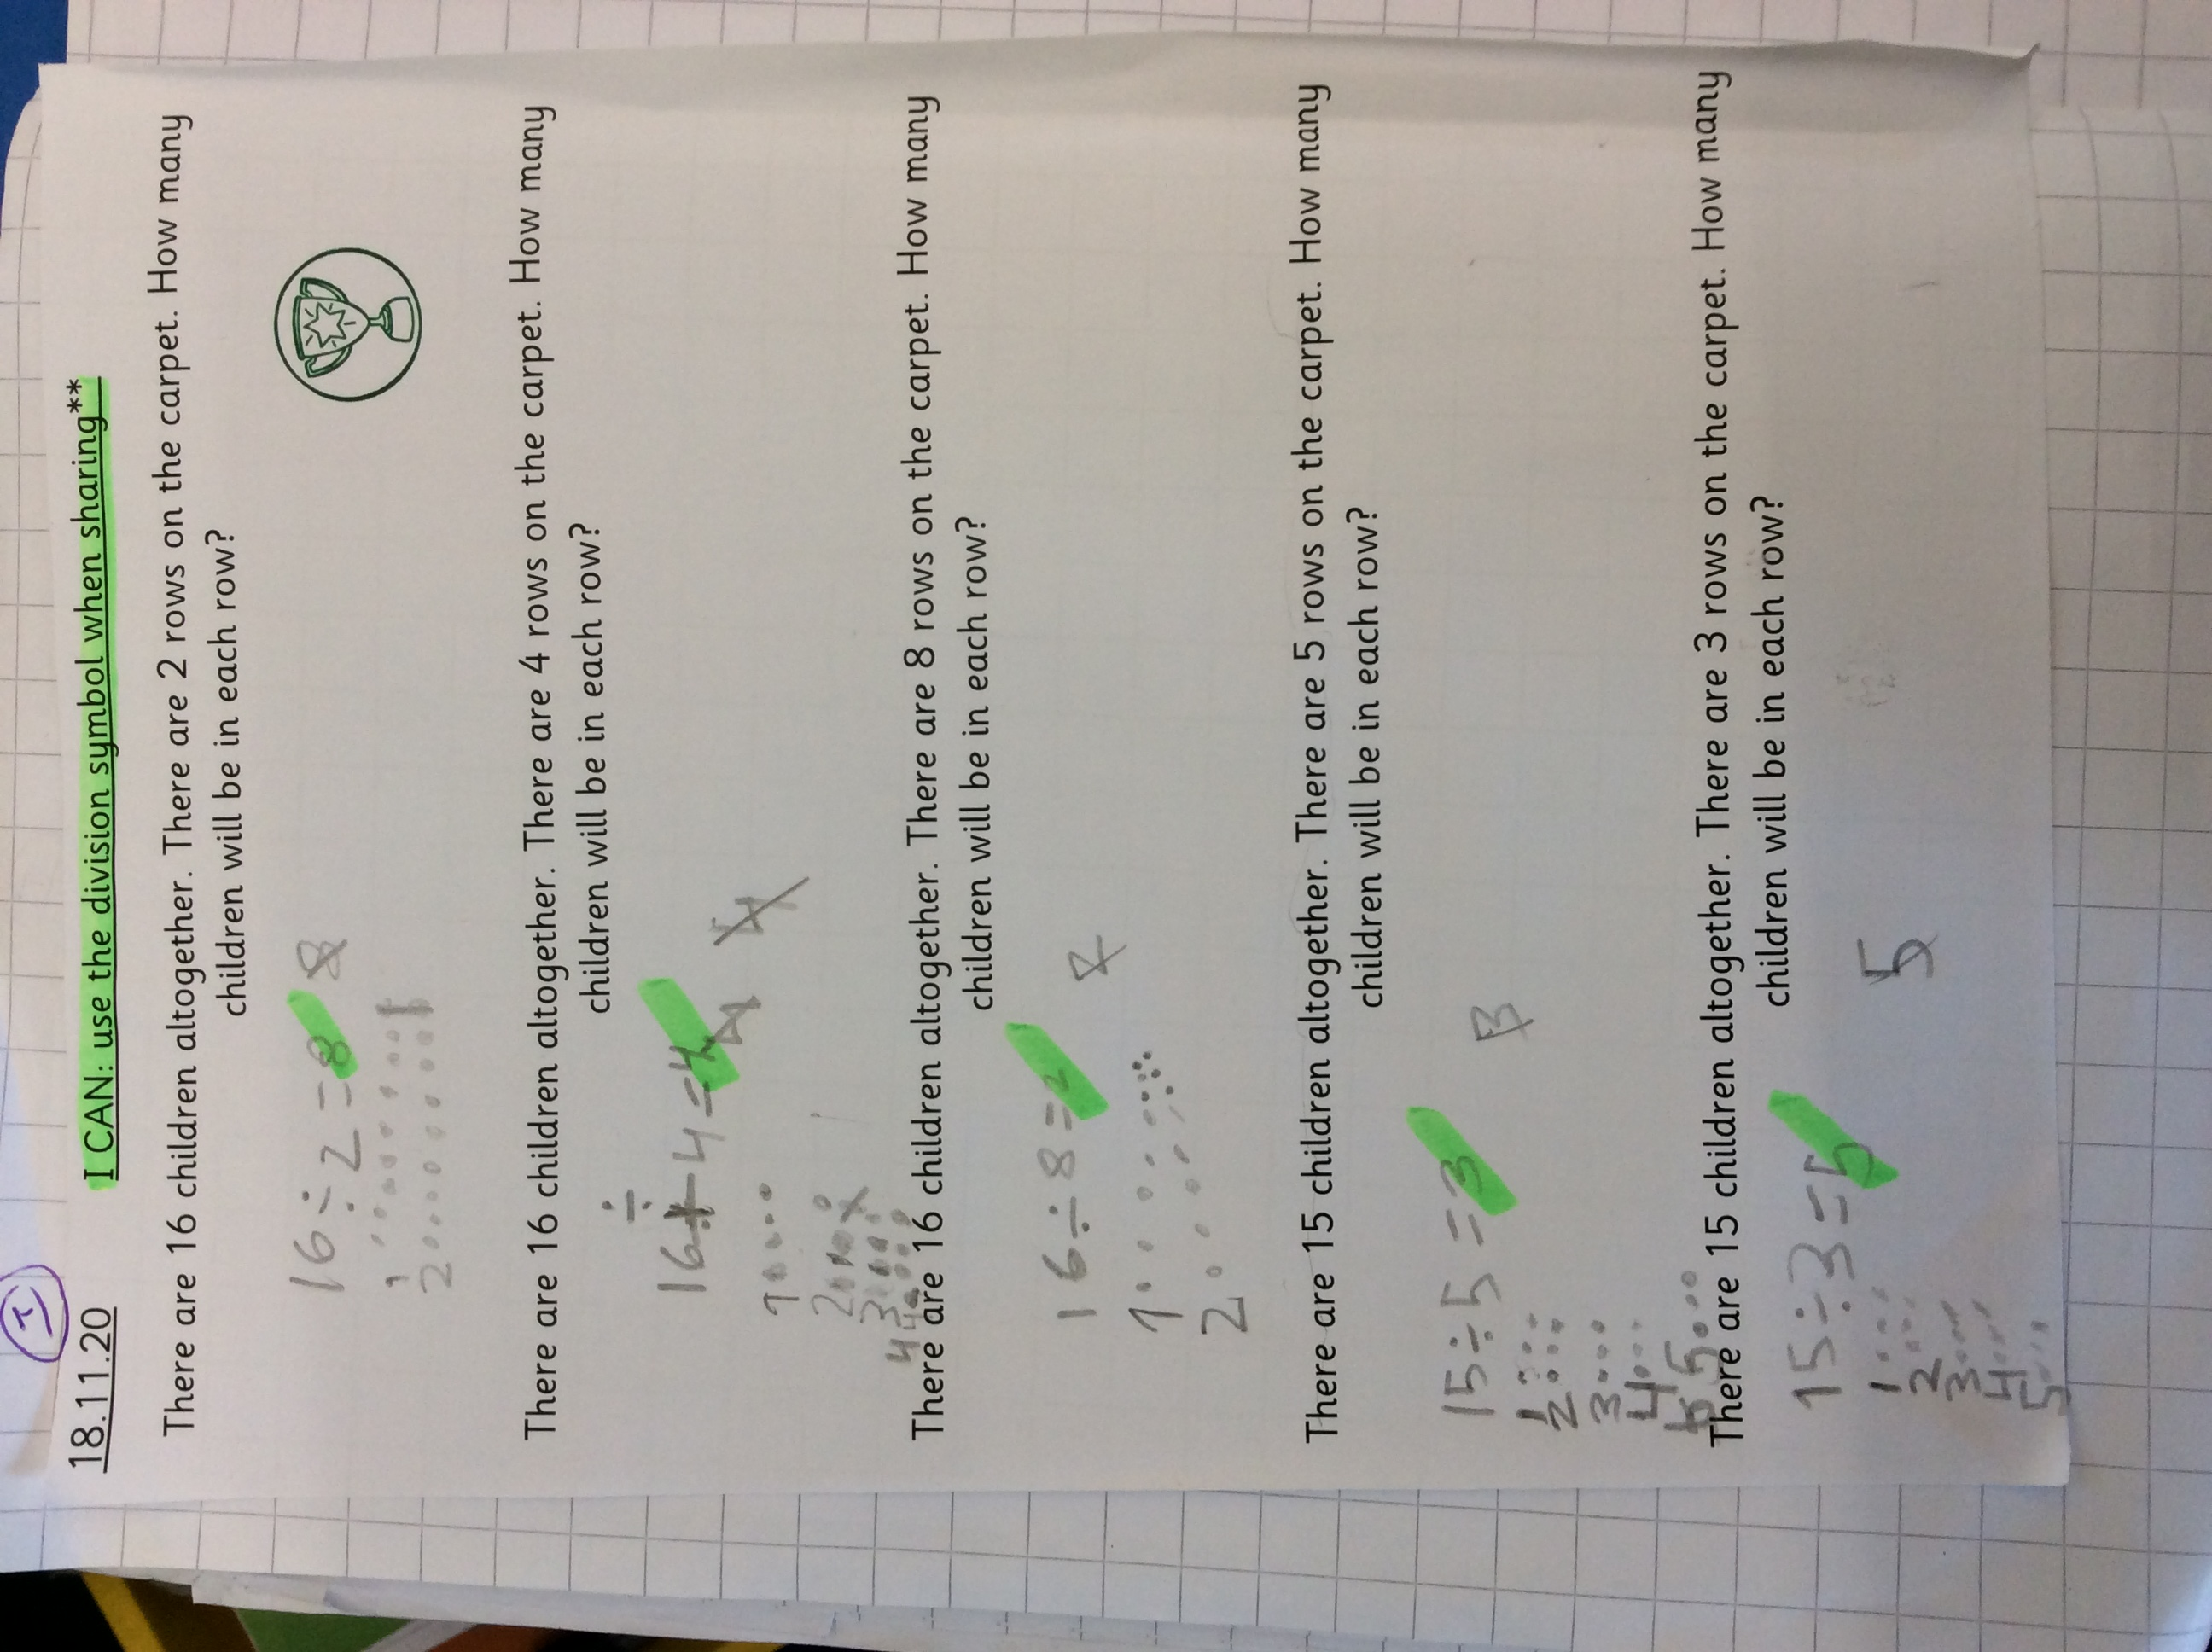 Luqman's excellent maths!